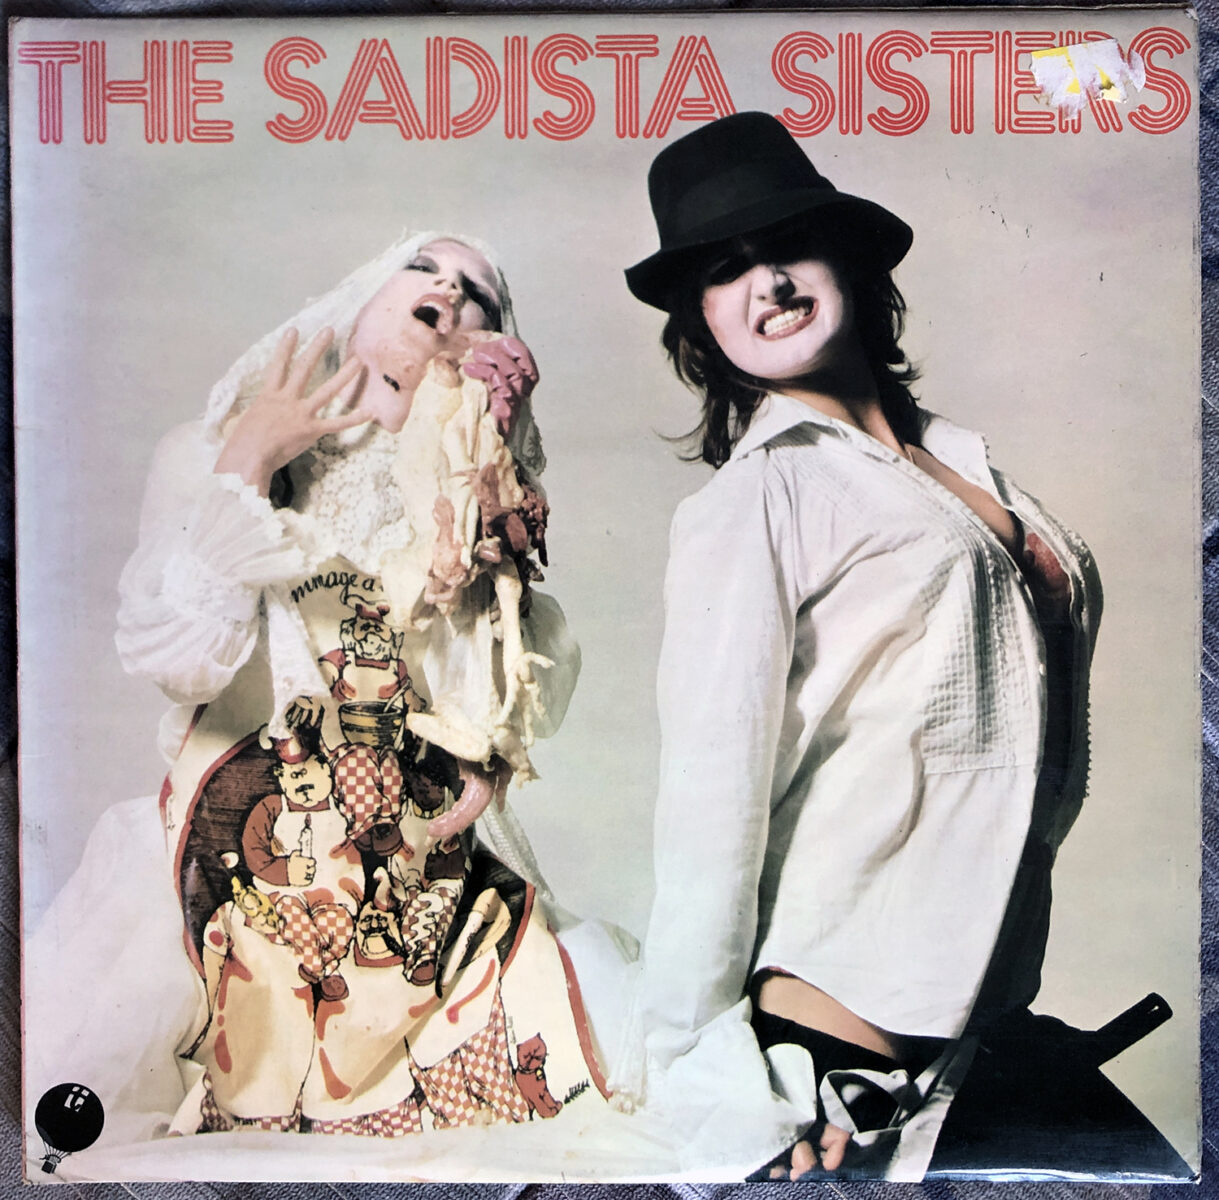 The Sadista Sisters Front Cover